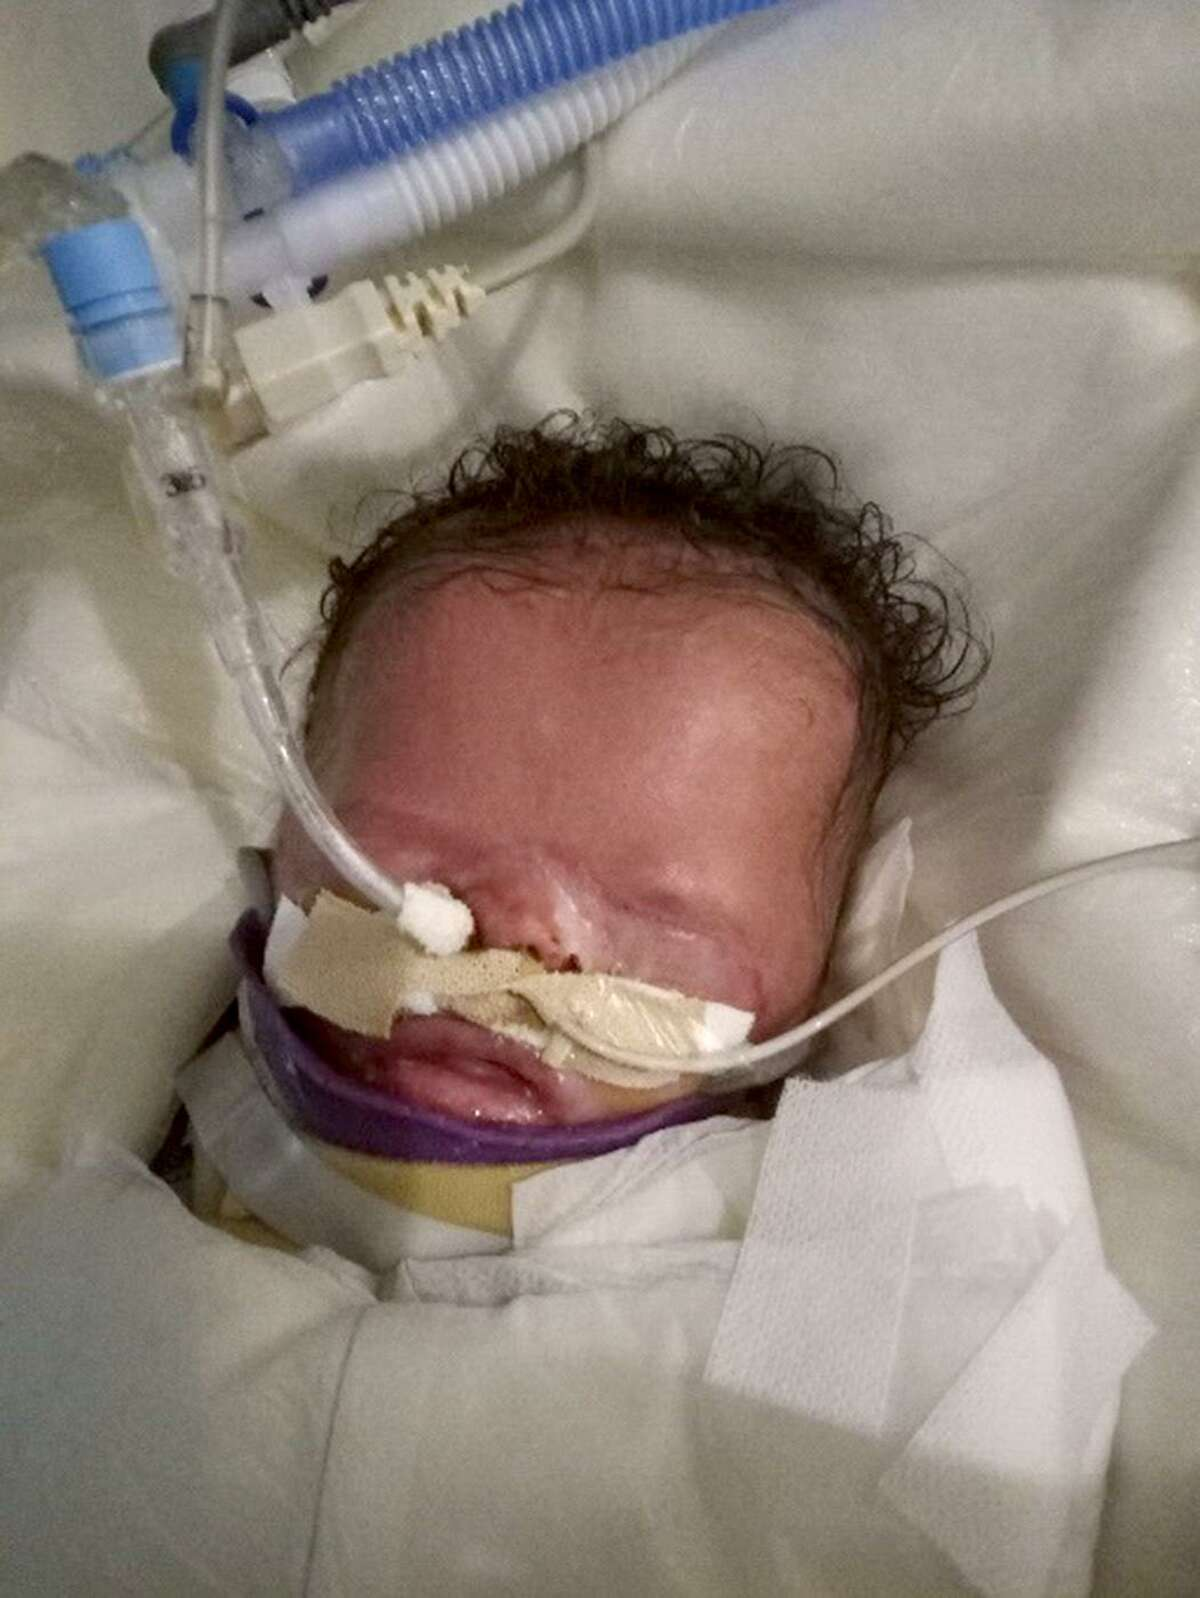 Pictured above is Ja'bari Gray, a baby born on New Year's Day in San Antonio without skin on most of his body and fused eyelids.